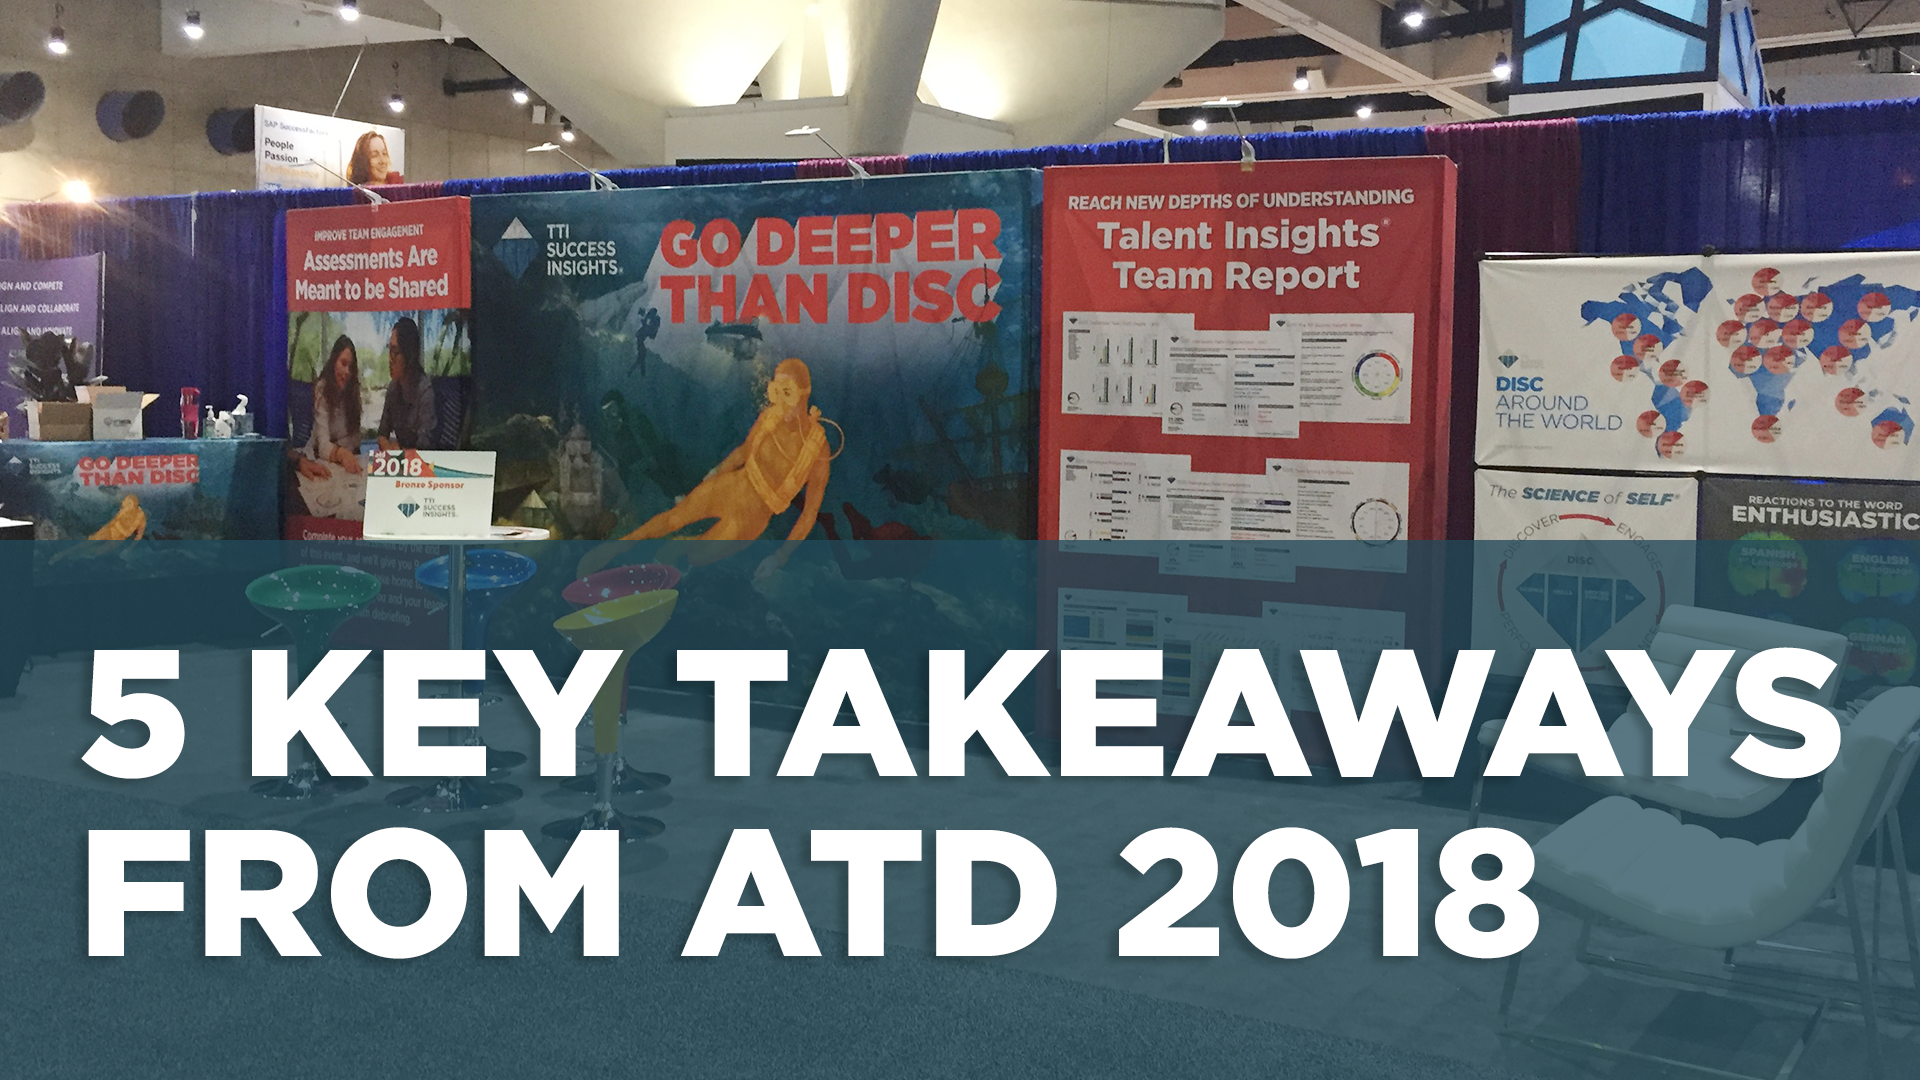 5 Key Takeaways from ATD 2018